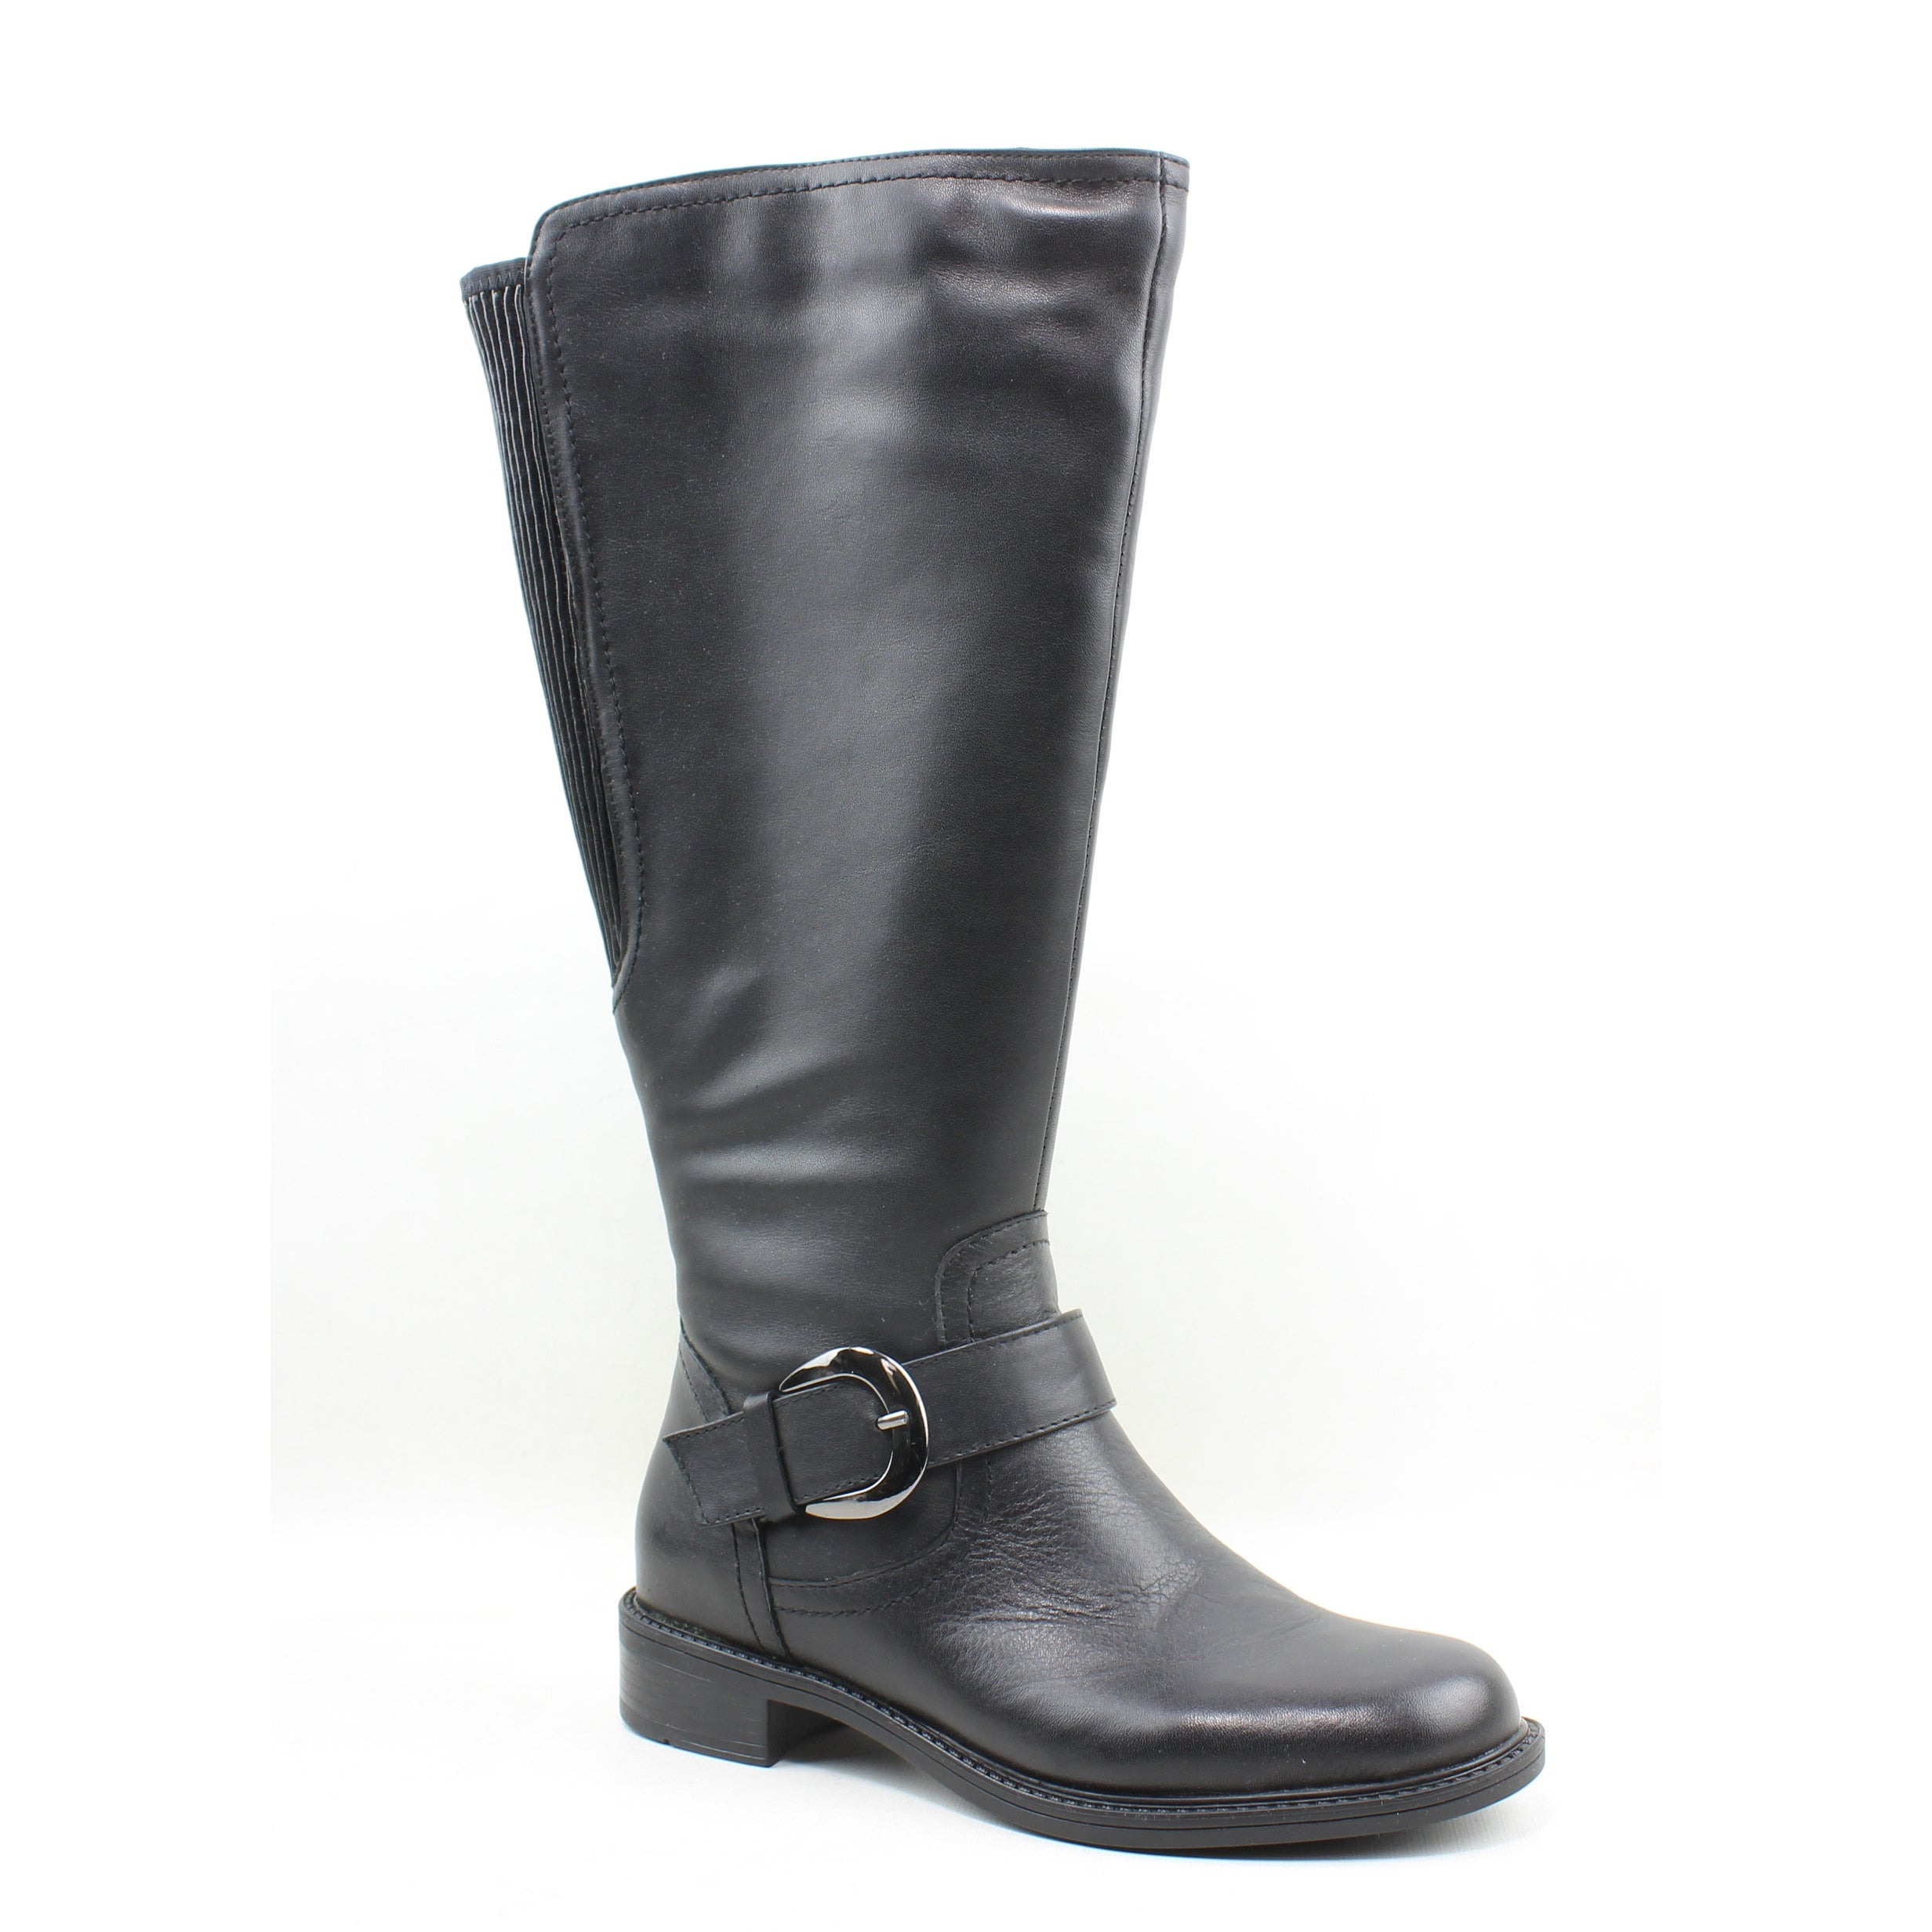 e625b29bec5 Buy David Tate Women's Boots Online at Overstock | Our Best Women's ...